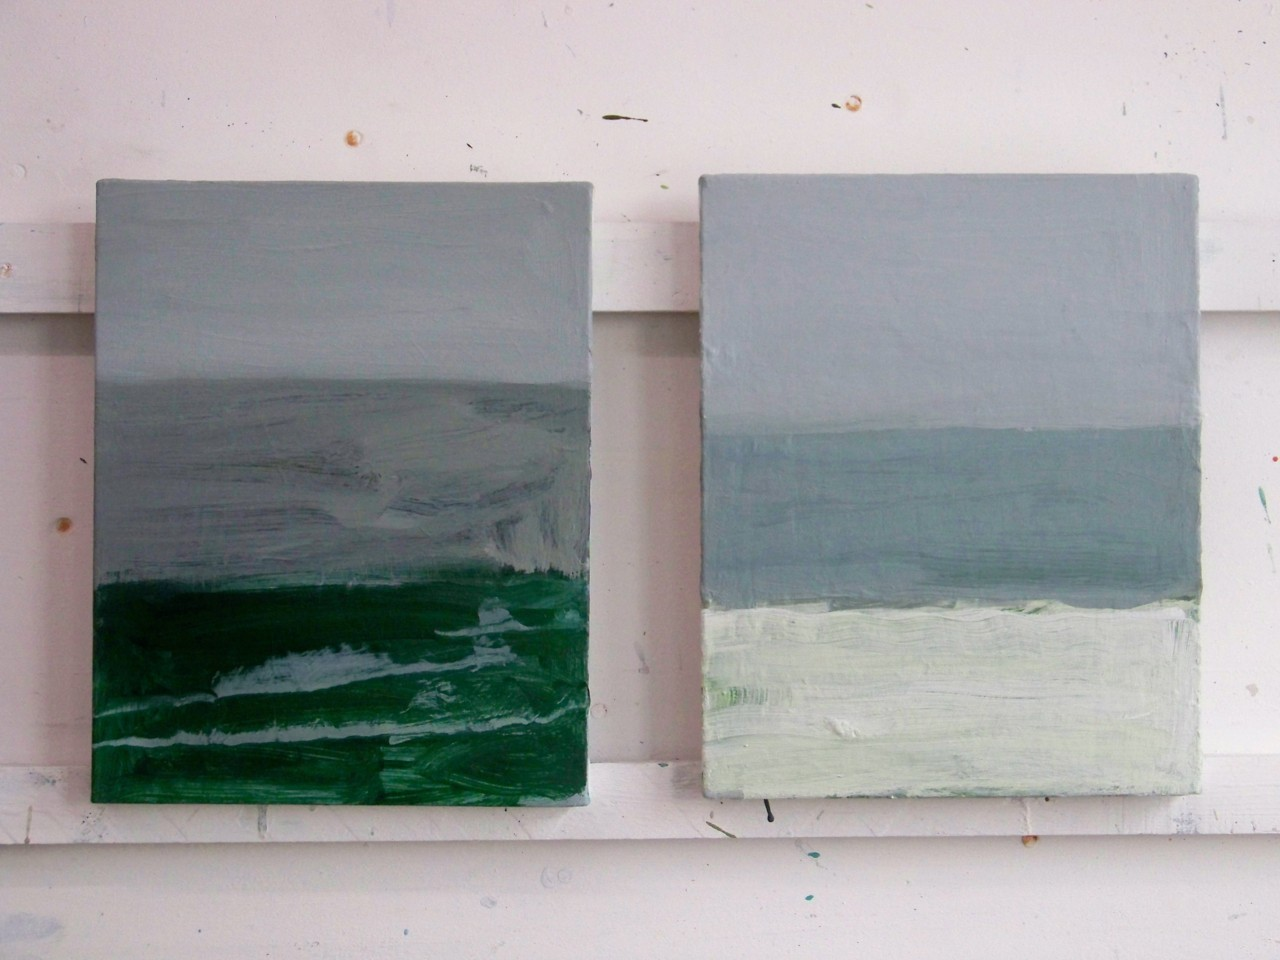 10th February 2012. Two new paintings of the snow and the sea. Each painting is 30 x 24 cm.